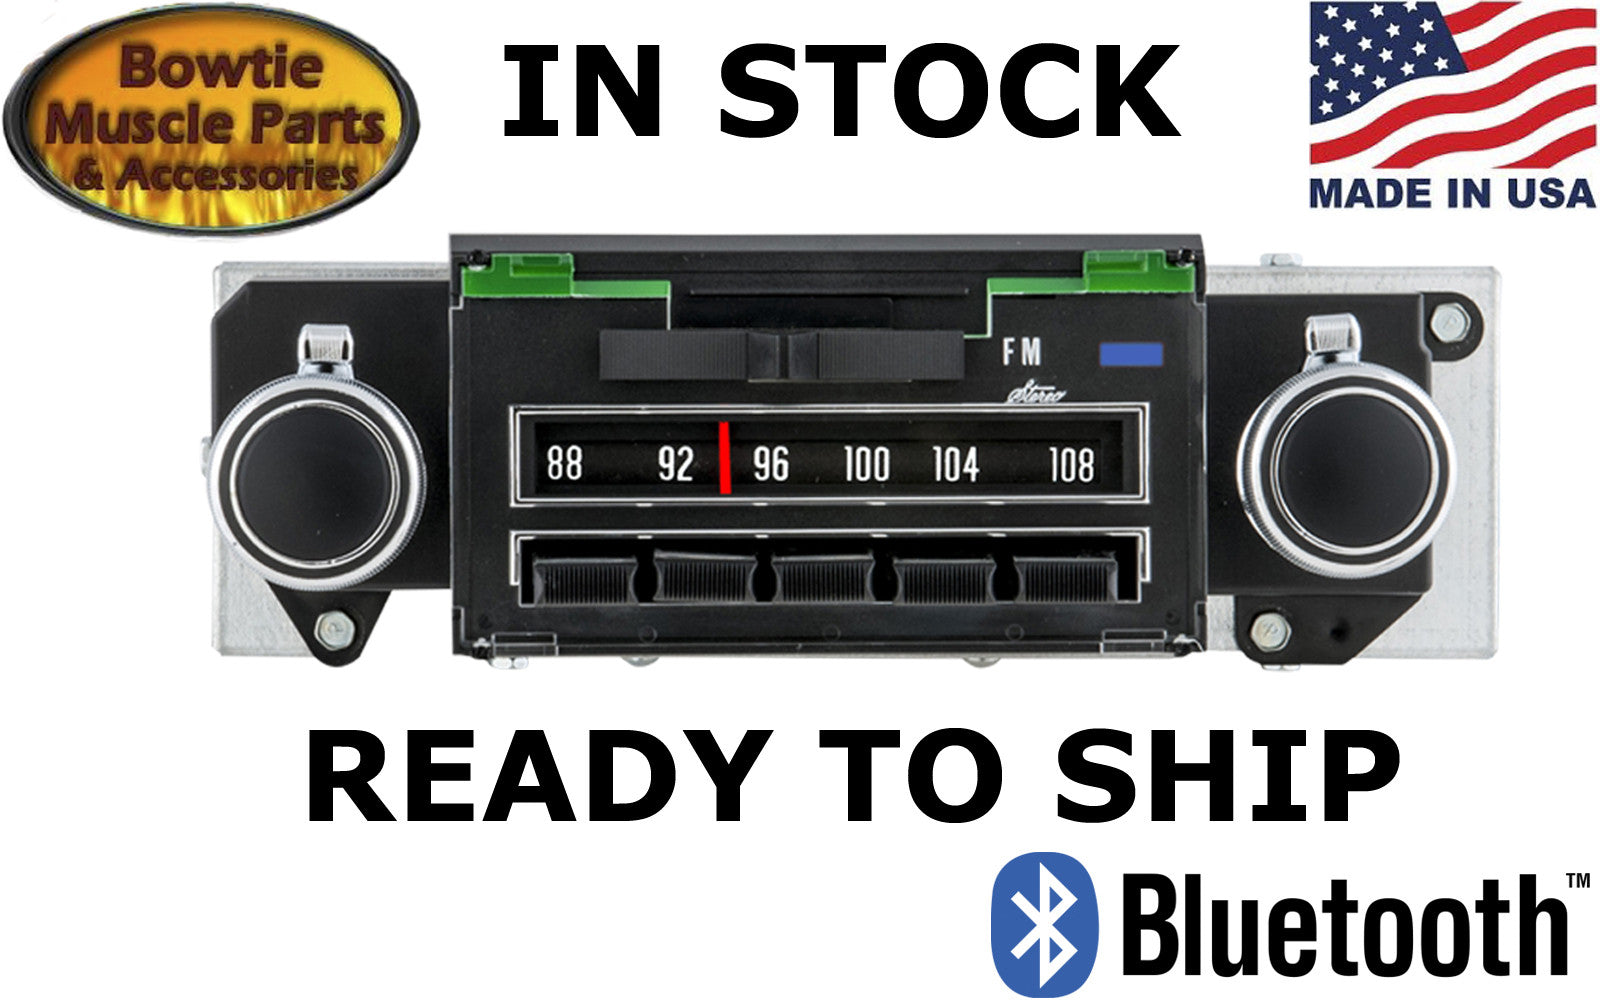 69 Camaro Chevelle Nova Factory Correct Blue Light Radio Stereo Ac Switch Wiring Bluetooth